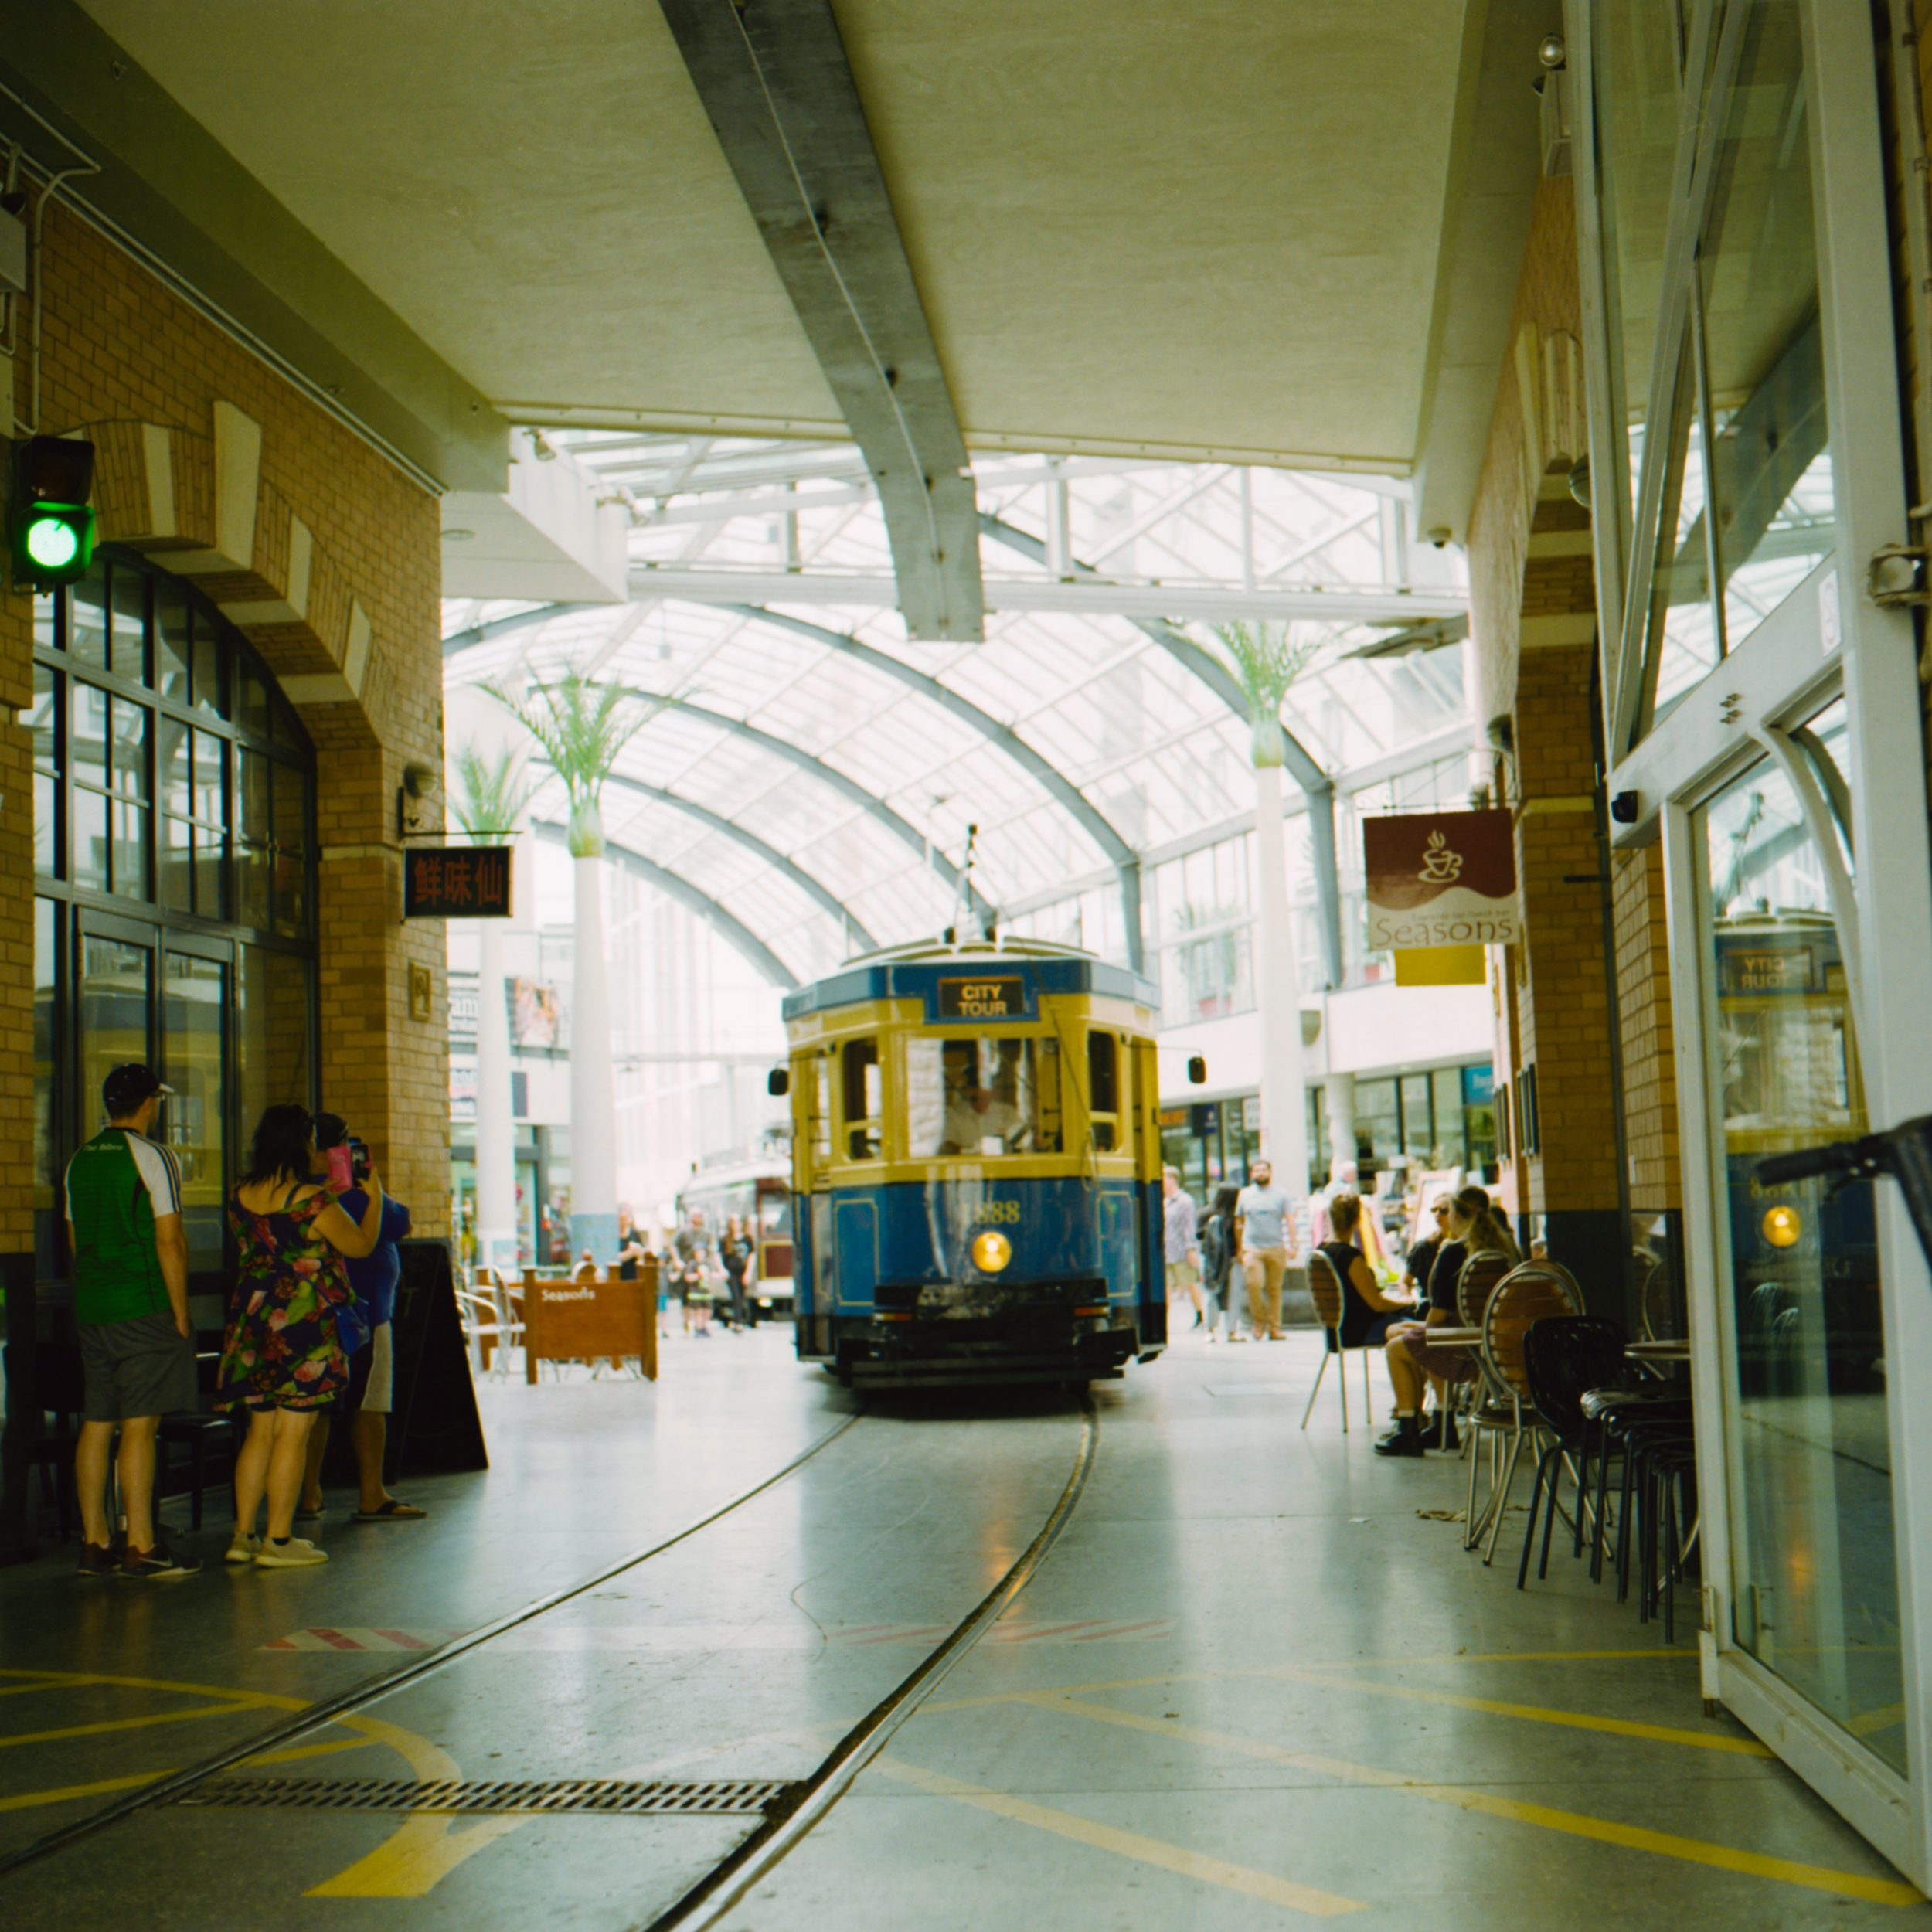 Indoor tram (Pic: Hunter Benbow)